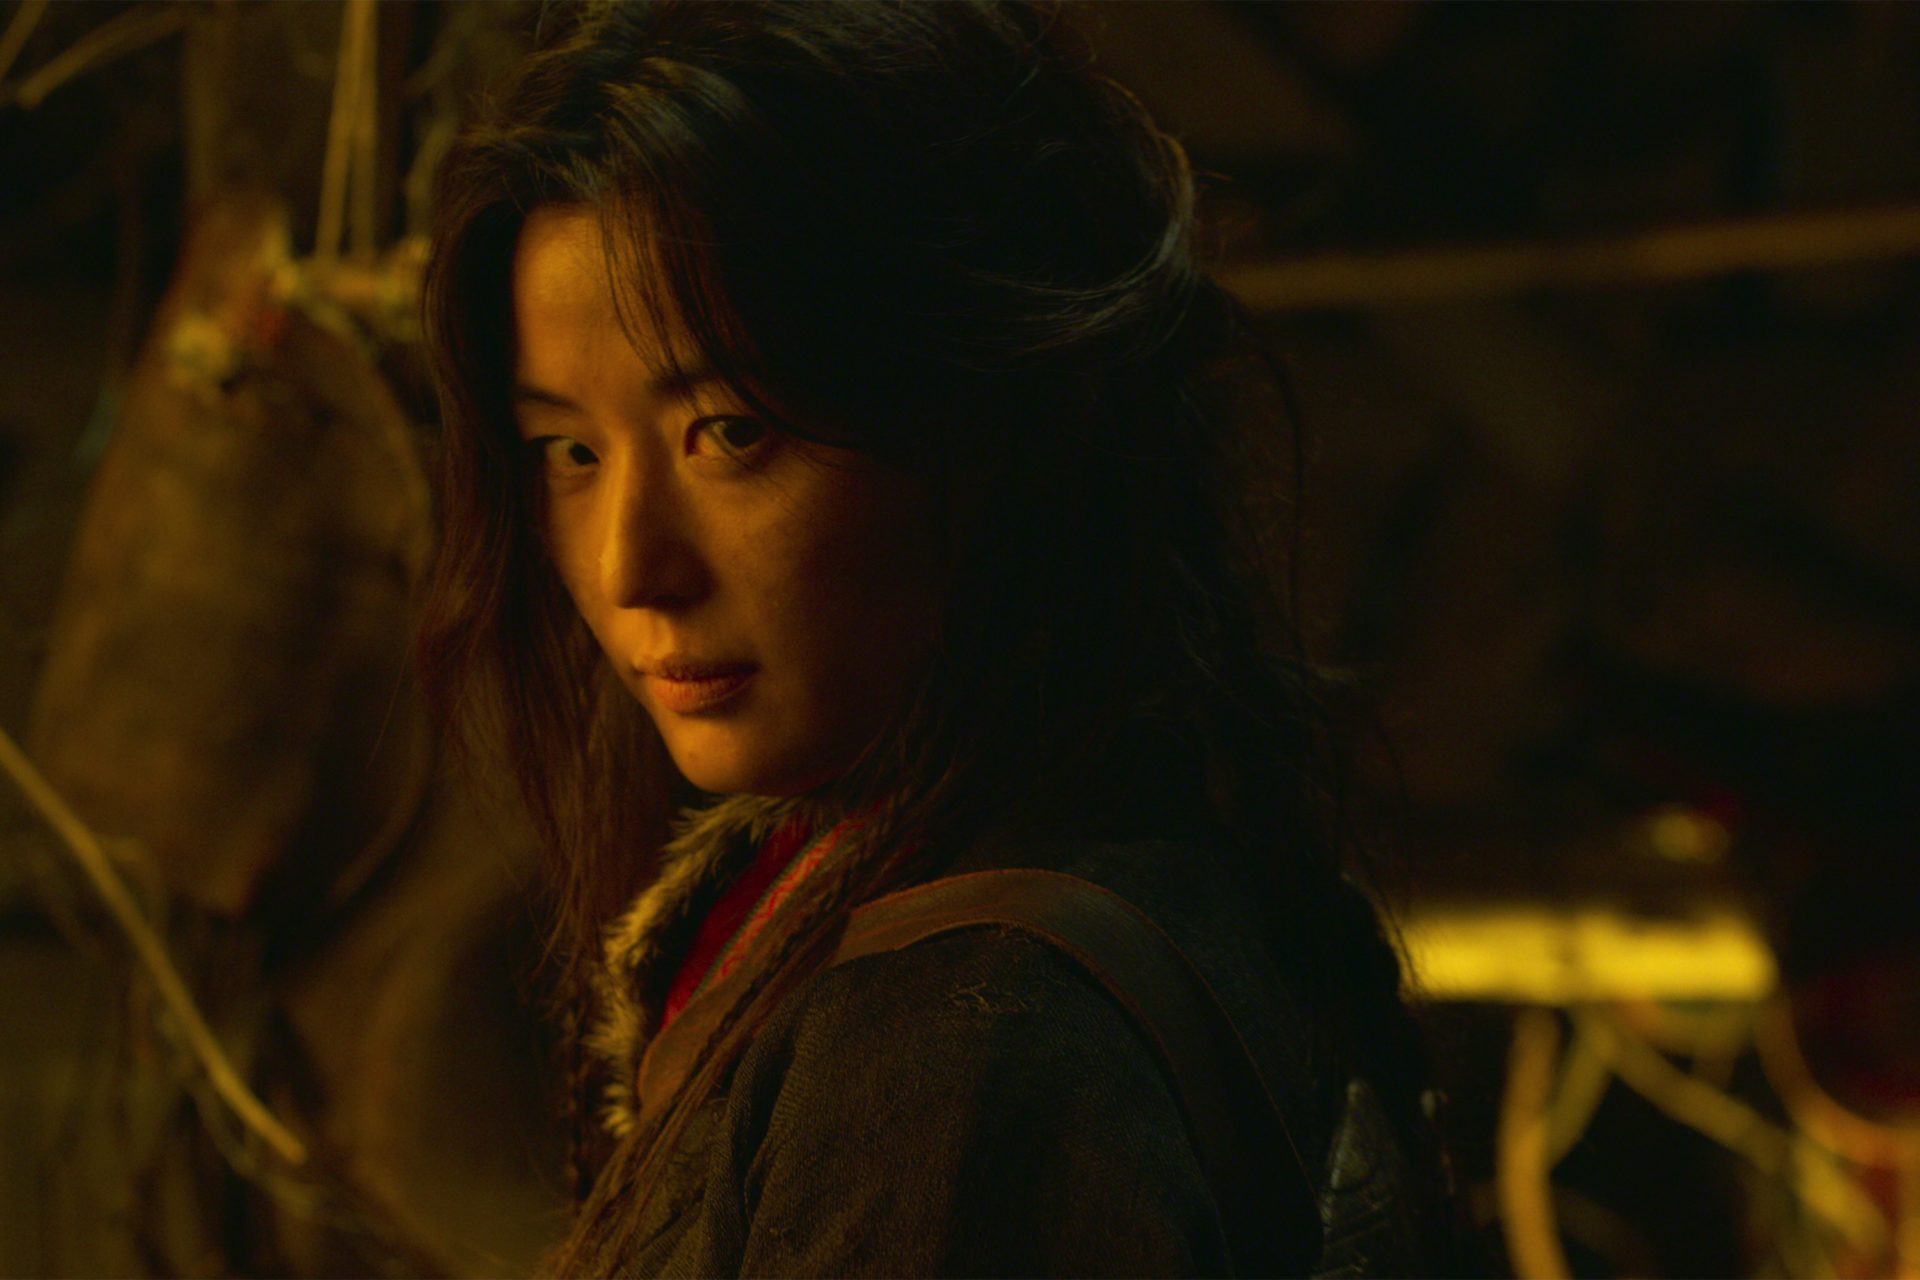 Dibintangi Jun Ji Hyun, Netflix Akan Segera Tayangkan 'Kingdom: Ashin of the North'